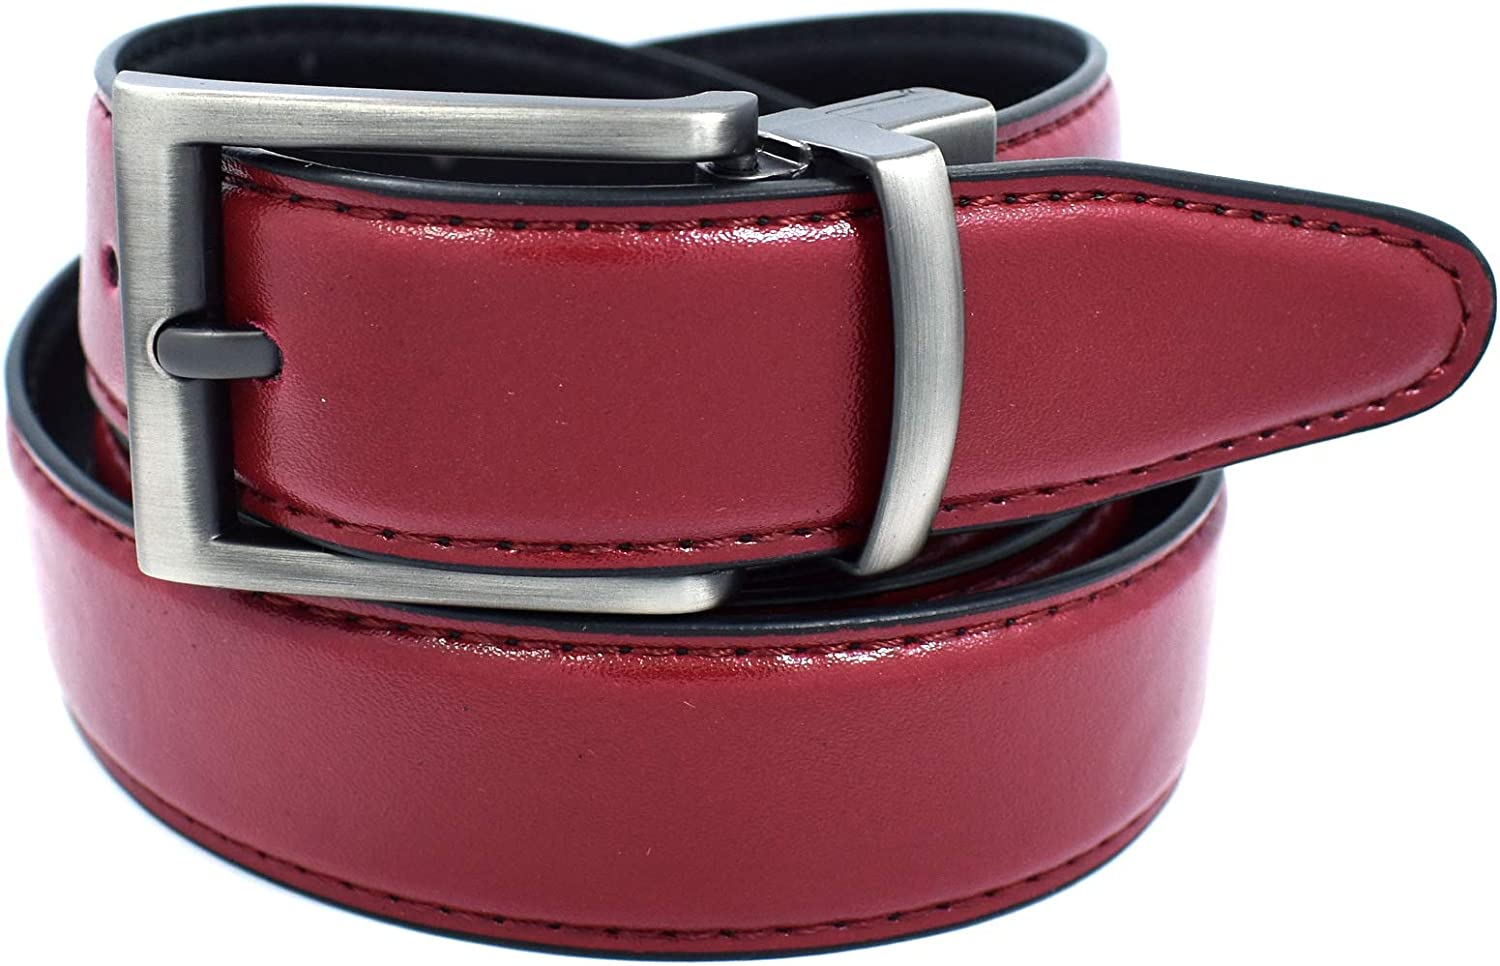 Men's Solid New Shipping Free Ranking TOP17 Leather Belts Available -20 Colors